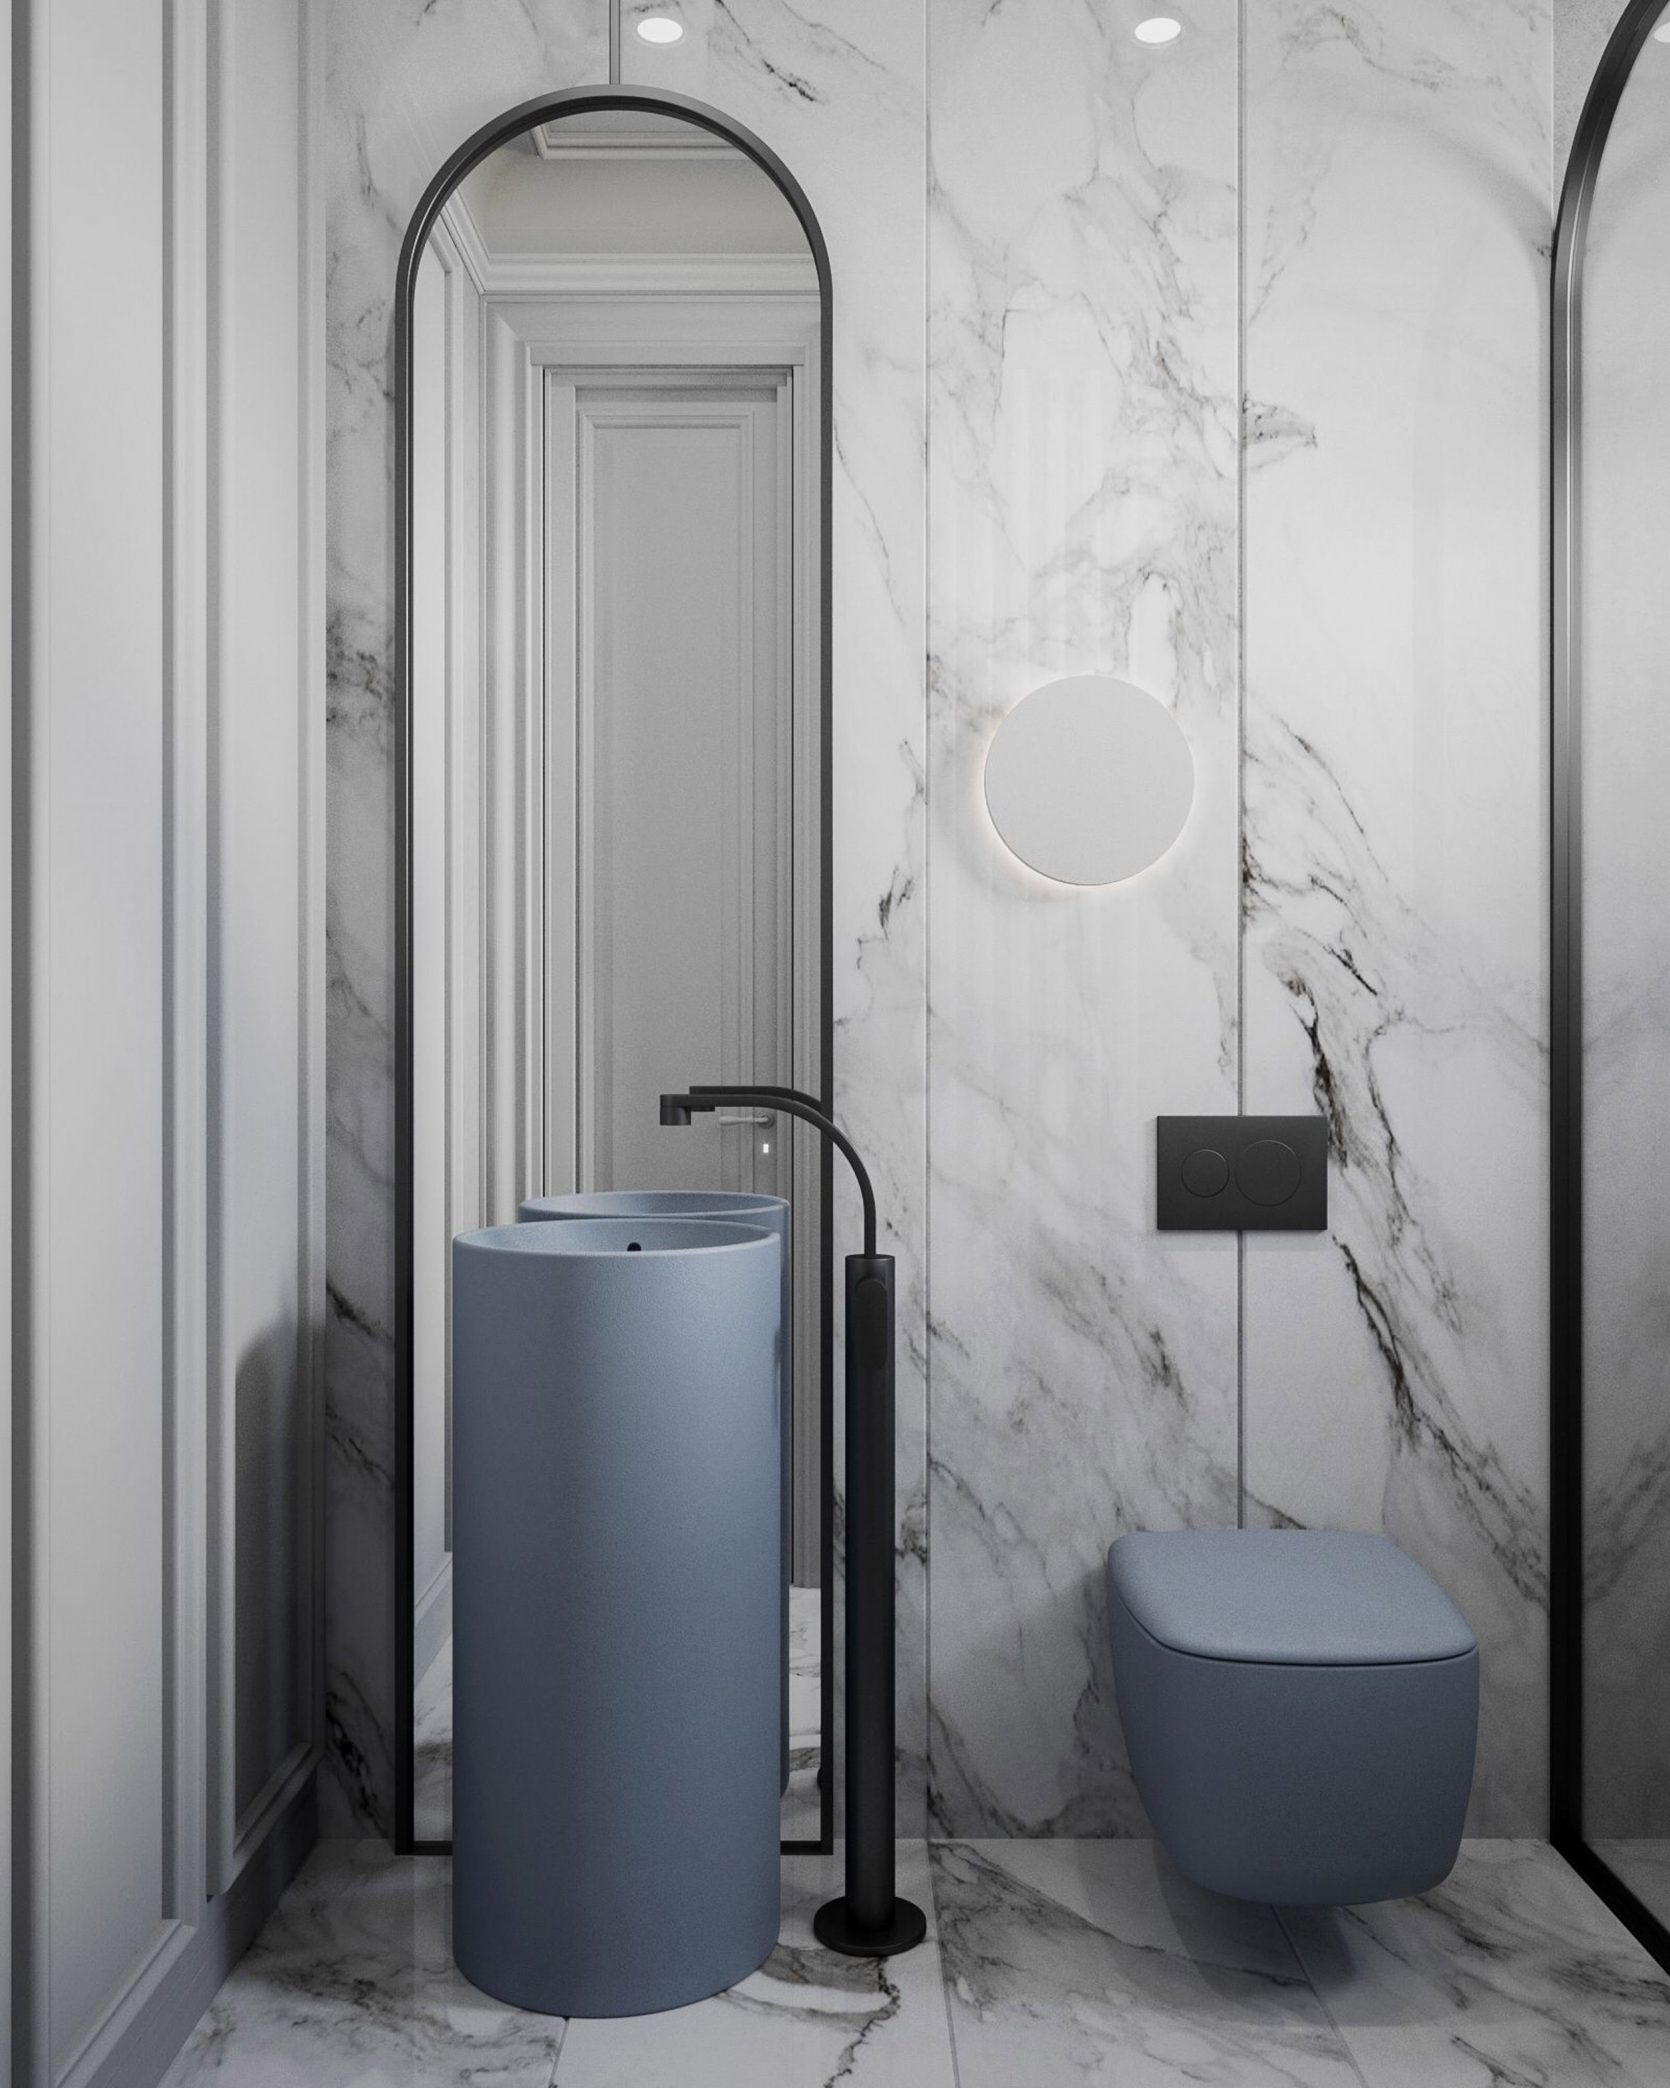 10 Of The Most Exciting Bathroom Design Trends For 2019 Bathroom